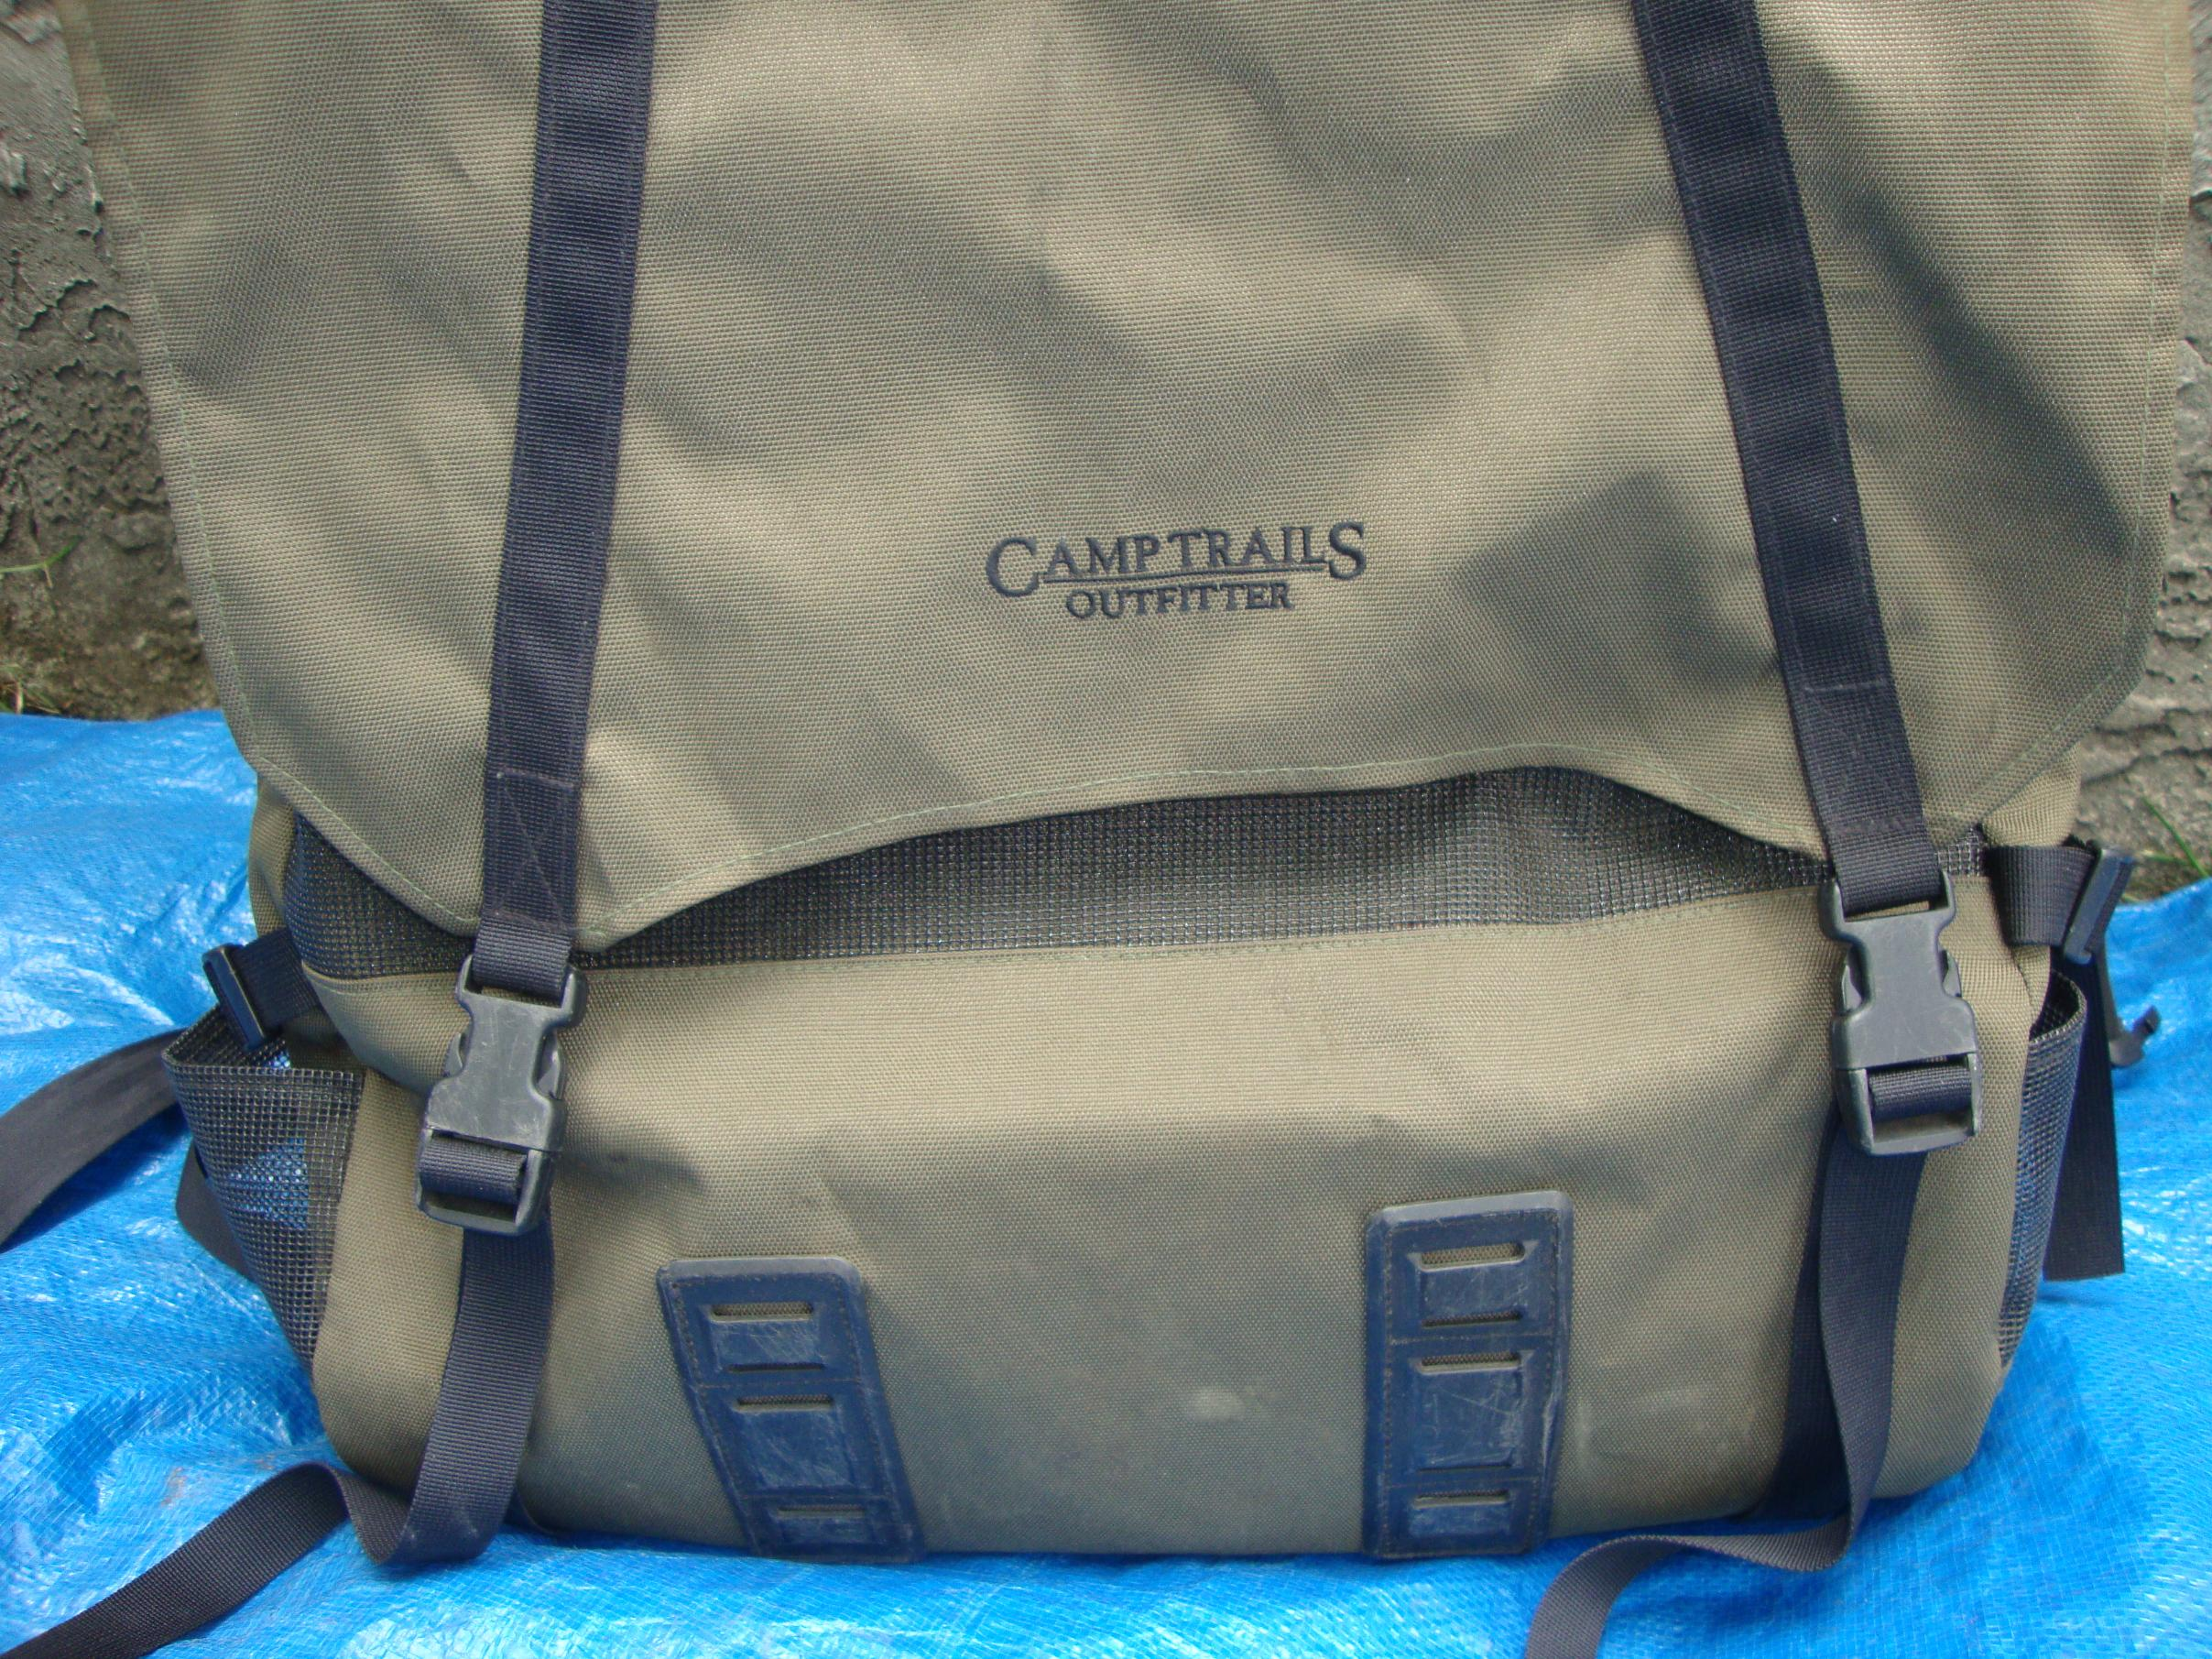 Bwca Camp Trails Outfitter Portage Pack Boundary Waters